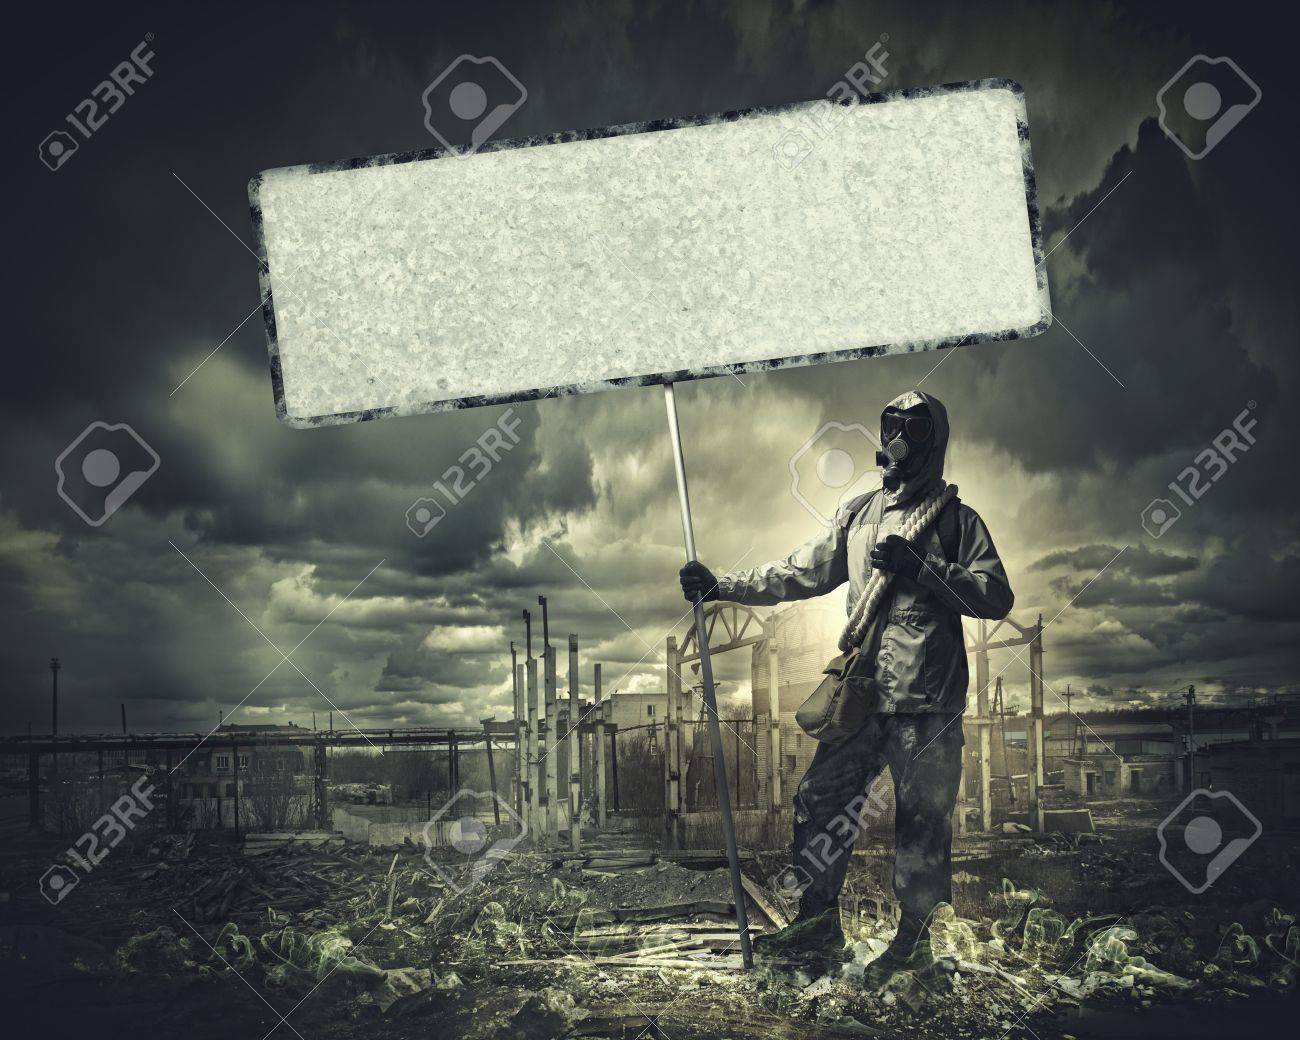 Stalker in gas mask with blank banner  Disaster concept Stock Photo - 21388902